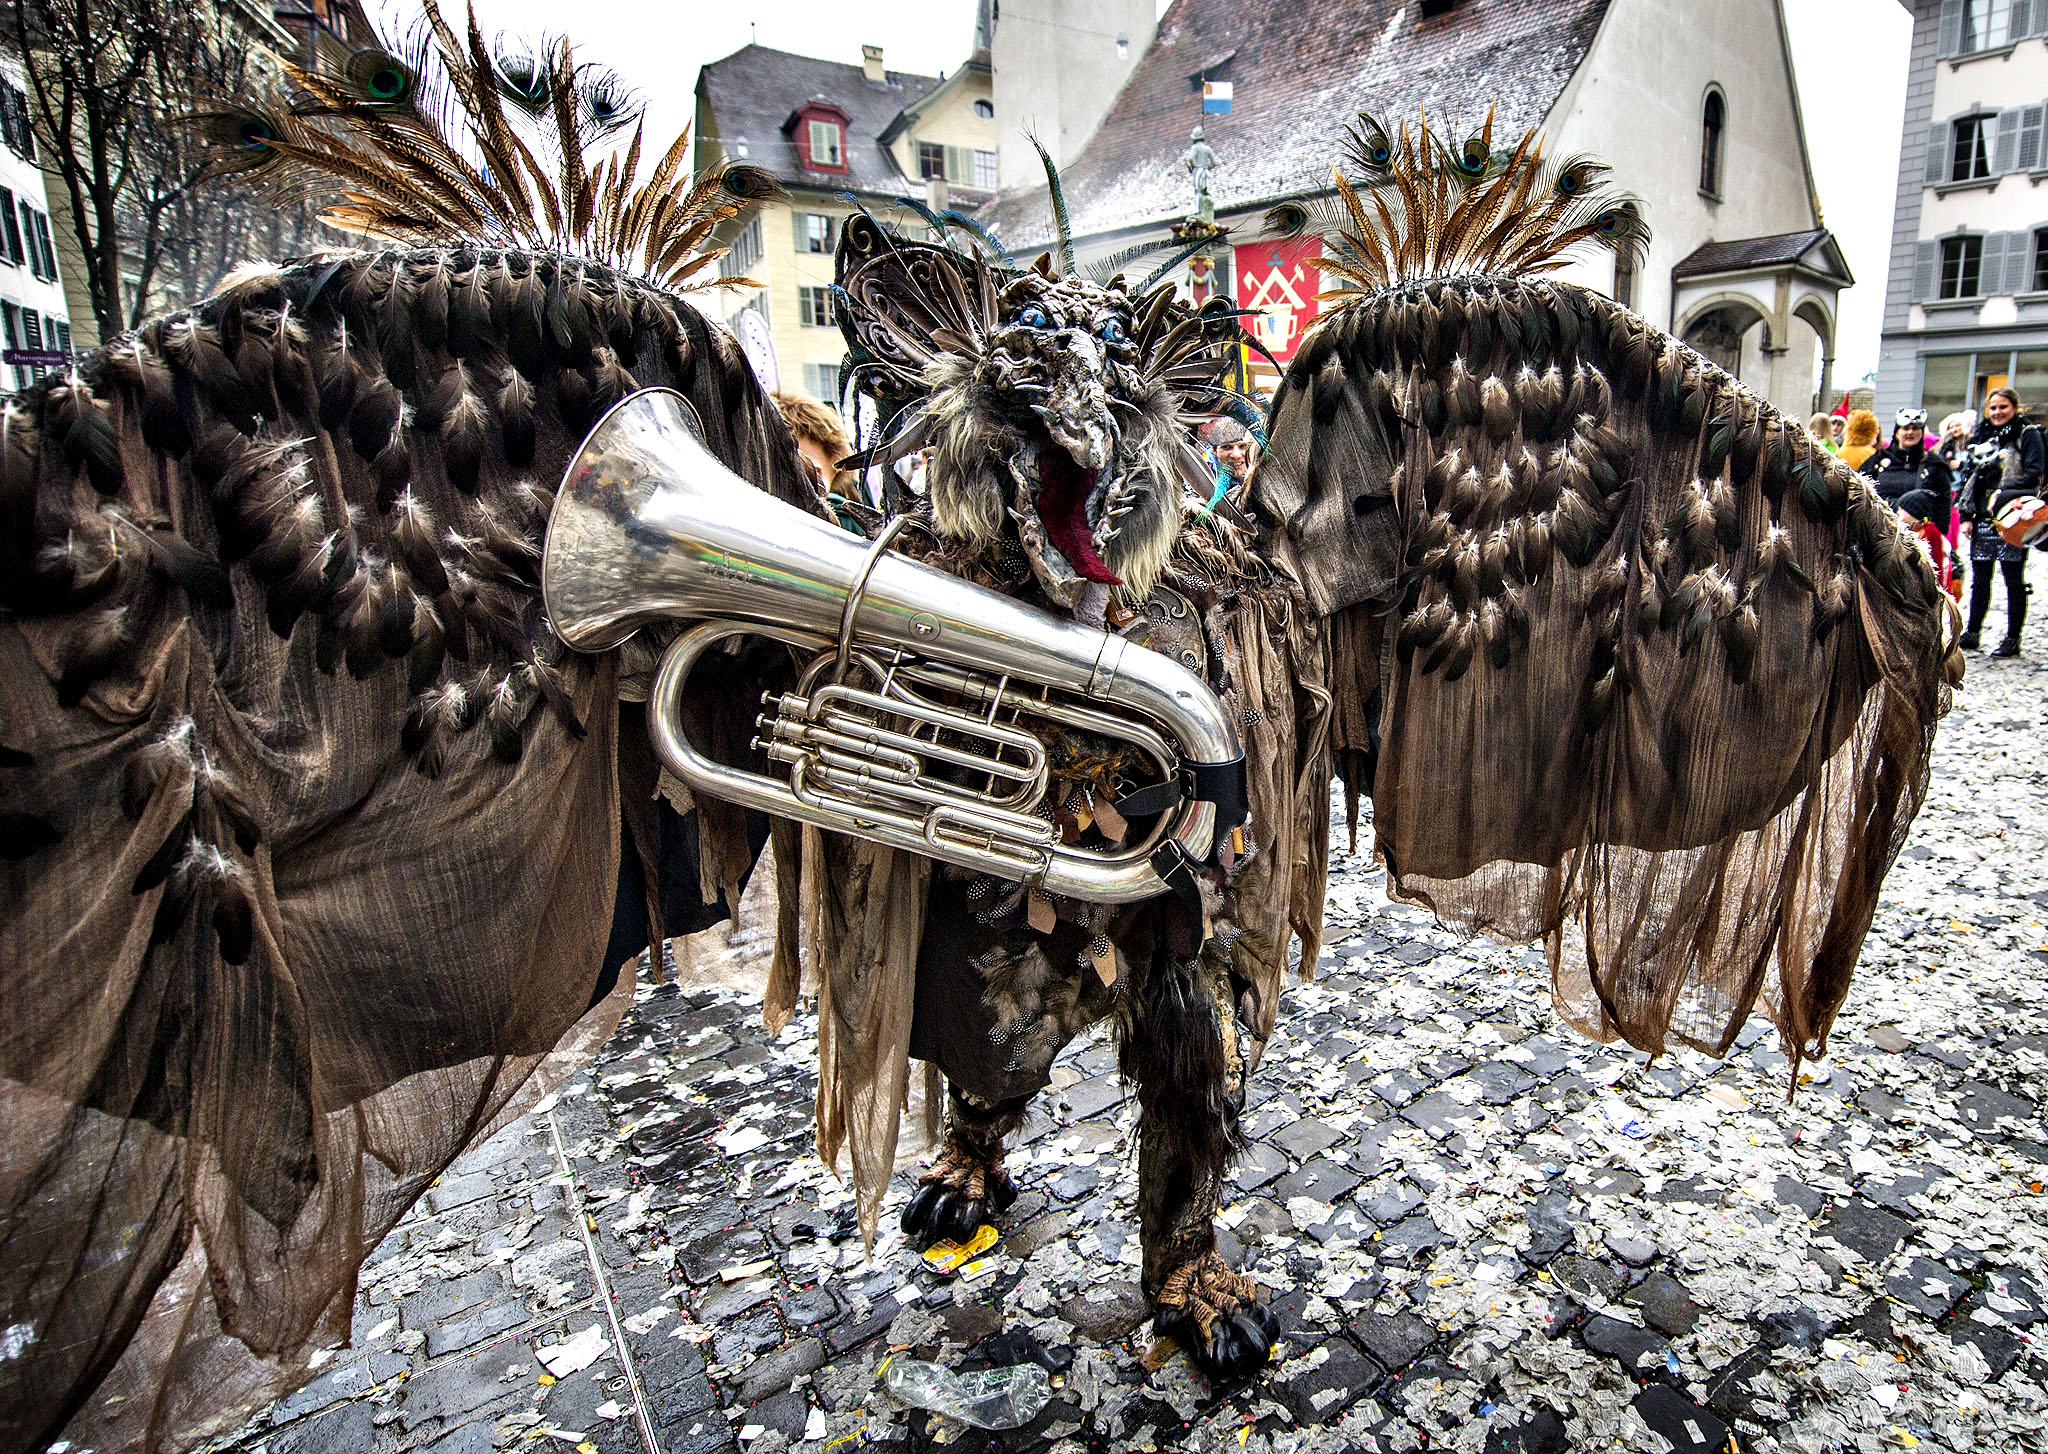 A reveler in a carnival costume attends the opening of the Lucerne carnival in Lucerne, Switzerland, on the so-called dirty Thursday, Feb. 27, 2014.